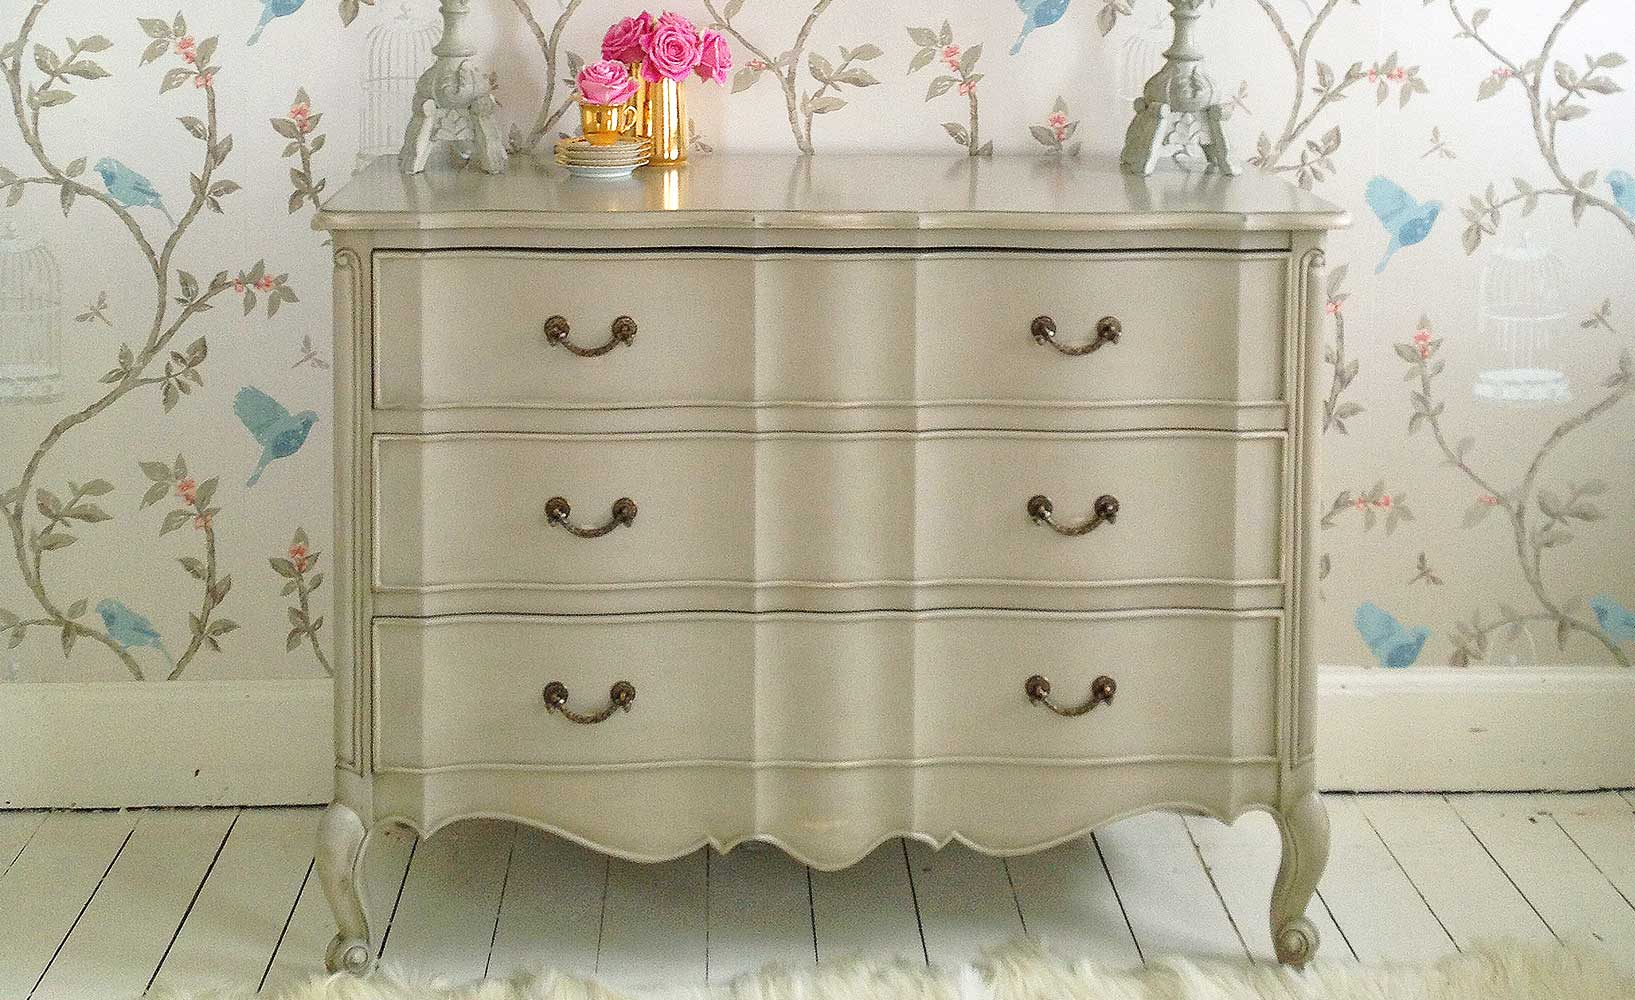 Wohnzimmer Sideboard Shabby 5 Coole Sideboards In Shabby Chic Optik